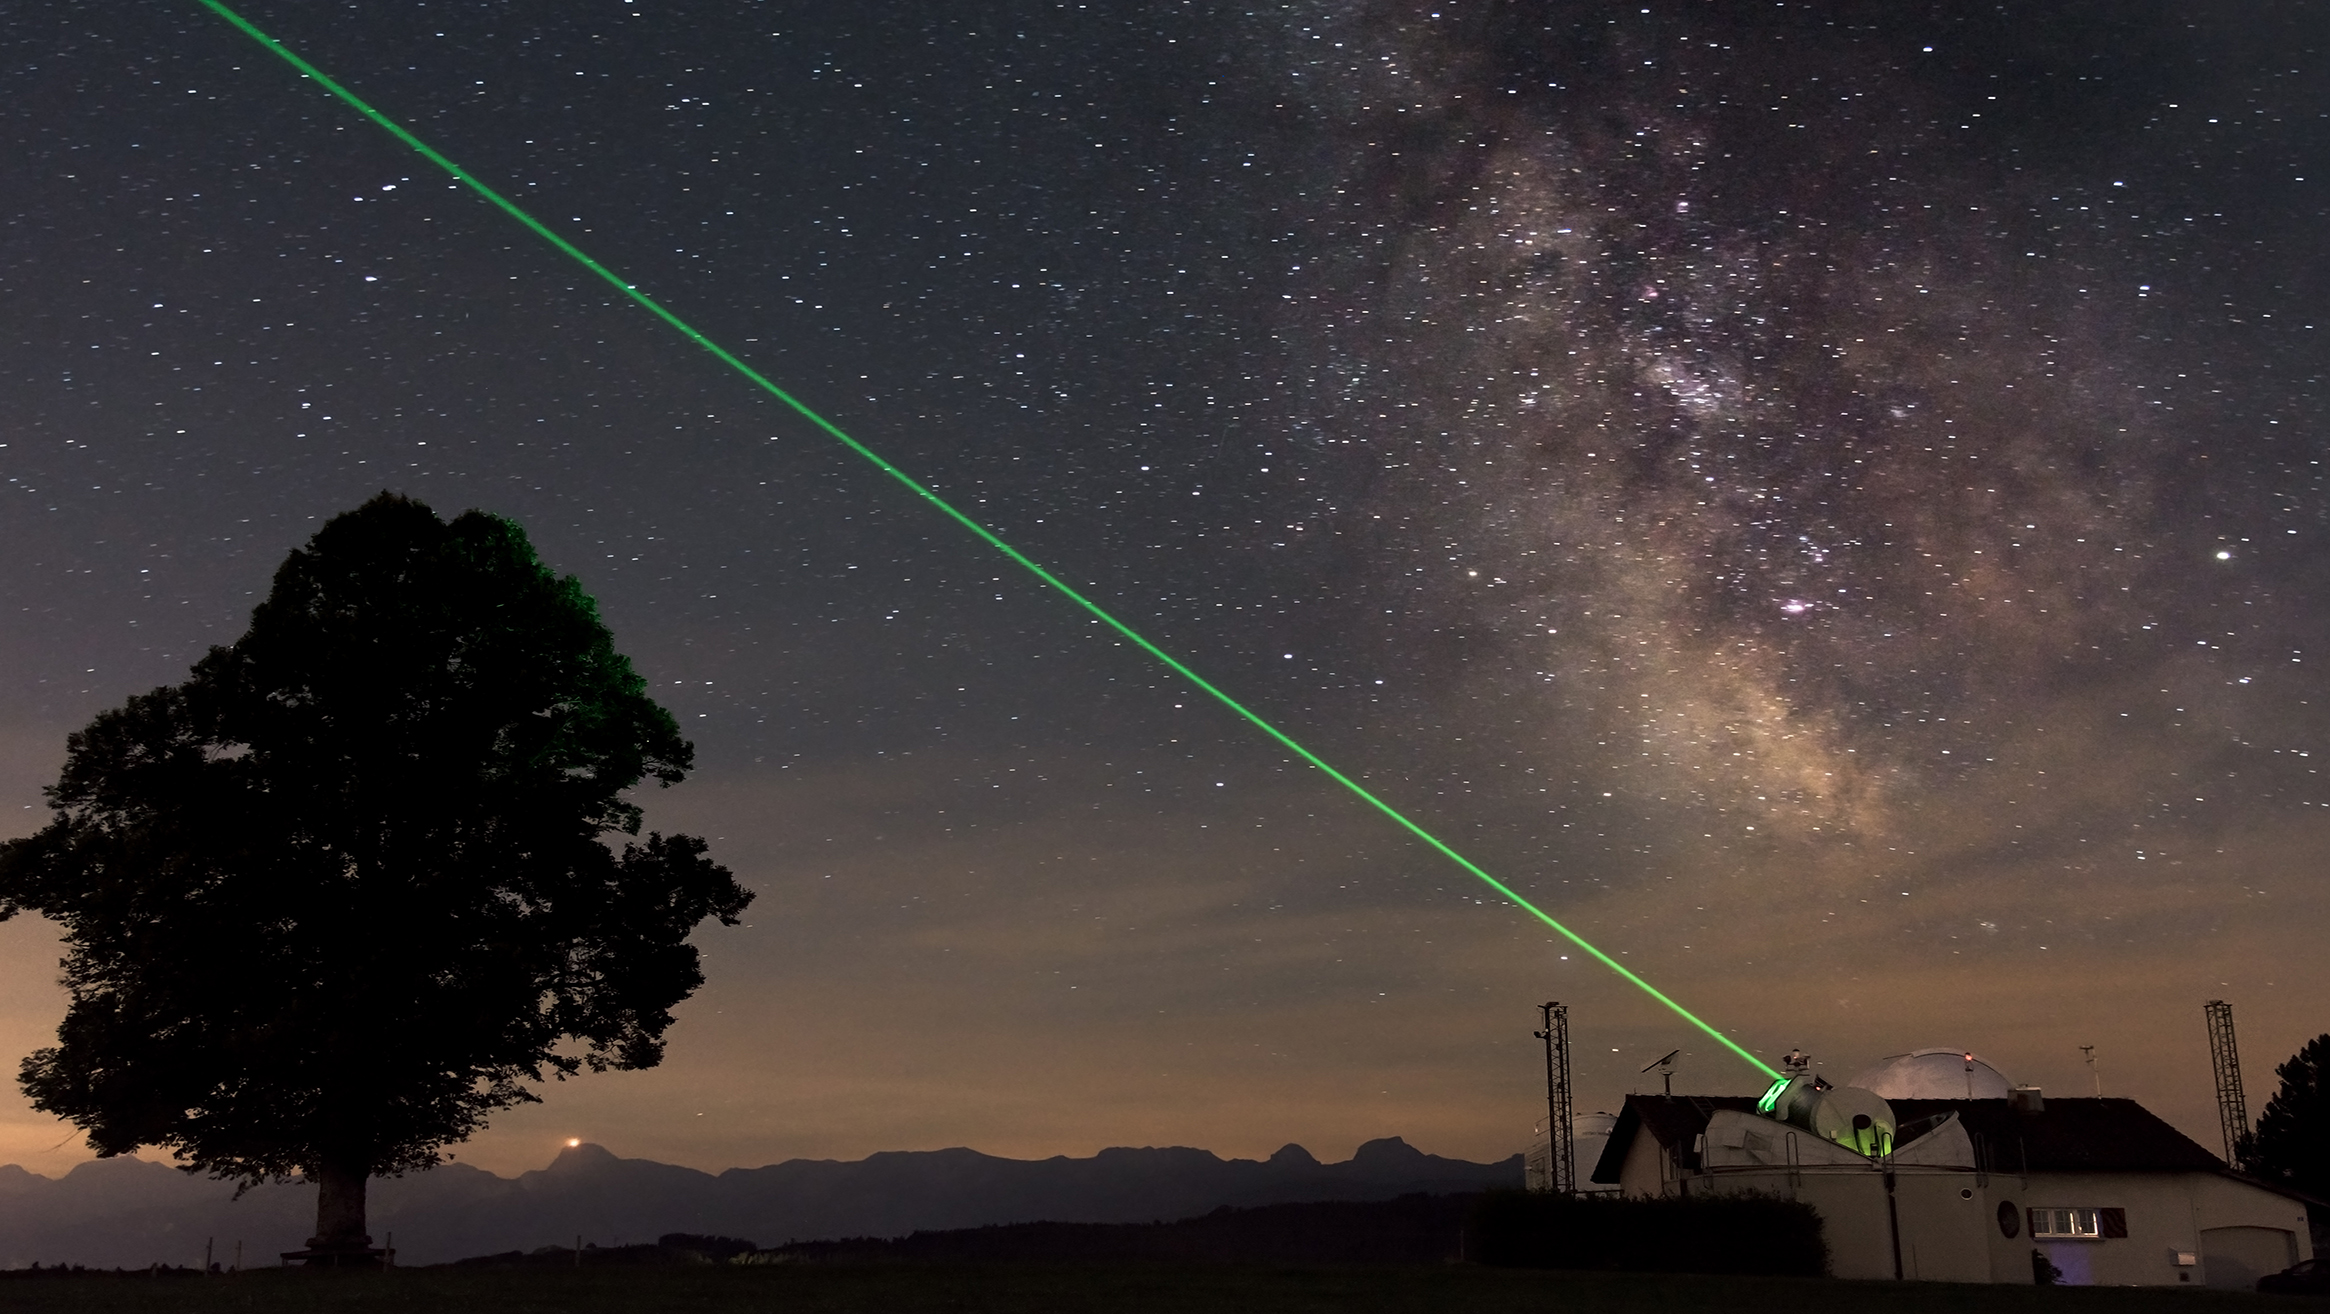 Satellite Laser Ranging (SLR) am Observatorium Zimmerwald. © Astronomisches Institut, Universität Bern / Emiliano Cordelli